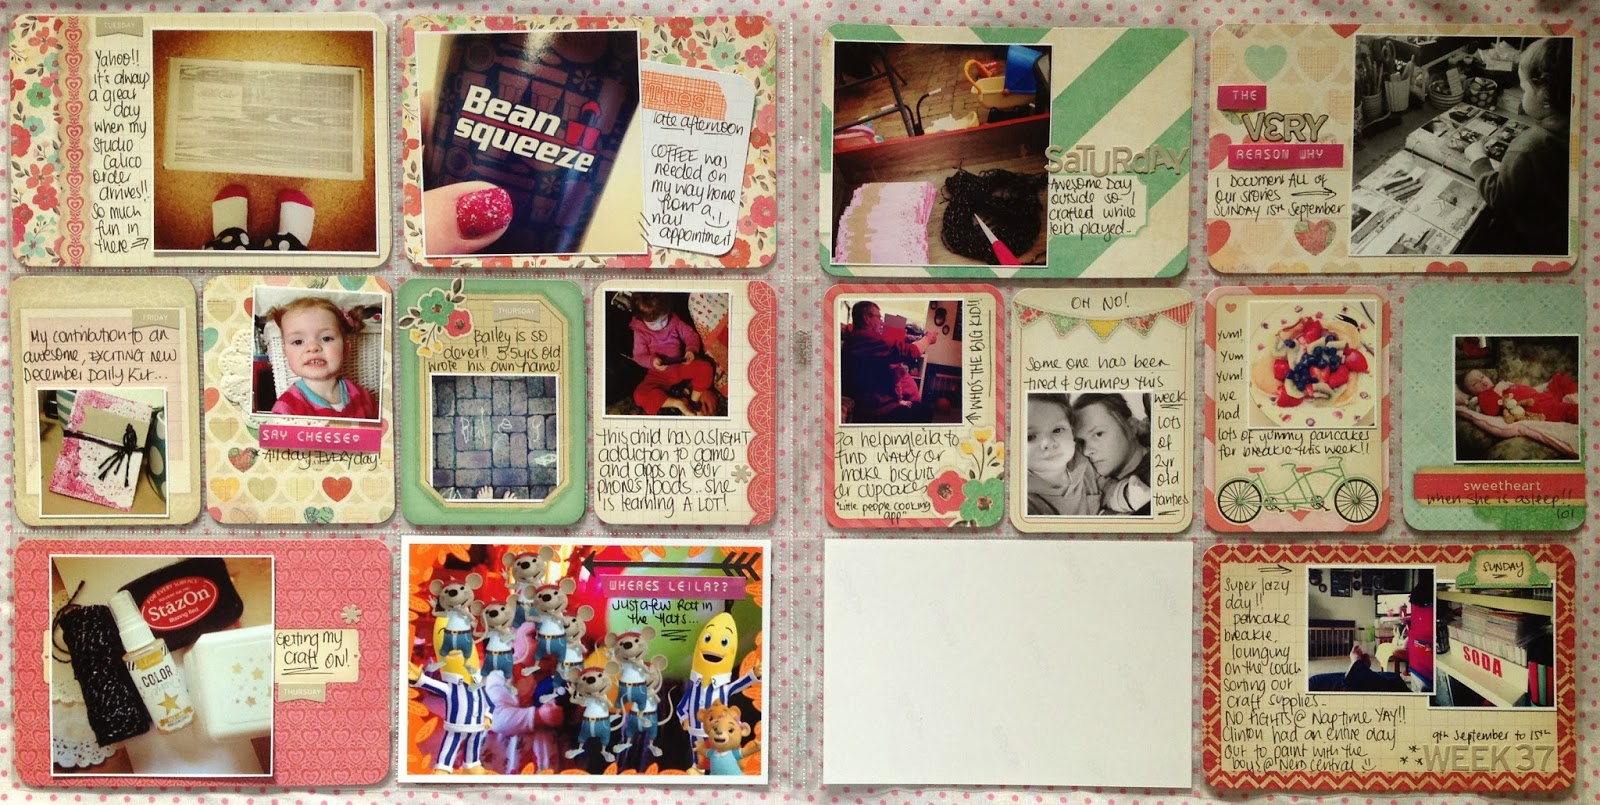 How to scrapbook yahoo - I Had Quite A Few Photos To Use For This Week So I Wanted To Keep It Nice And Simple Ive Used One Of The New Becky Higgins Project Life Themed Card